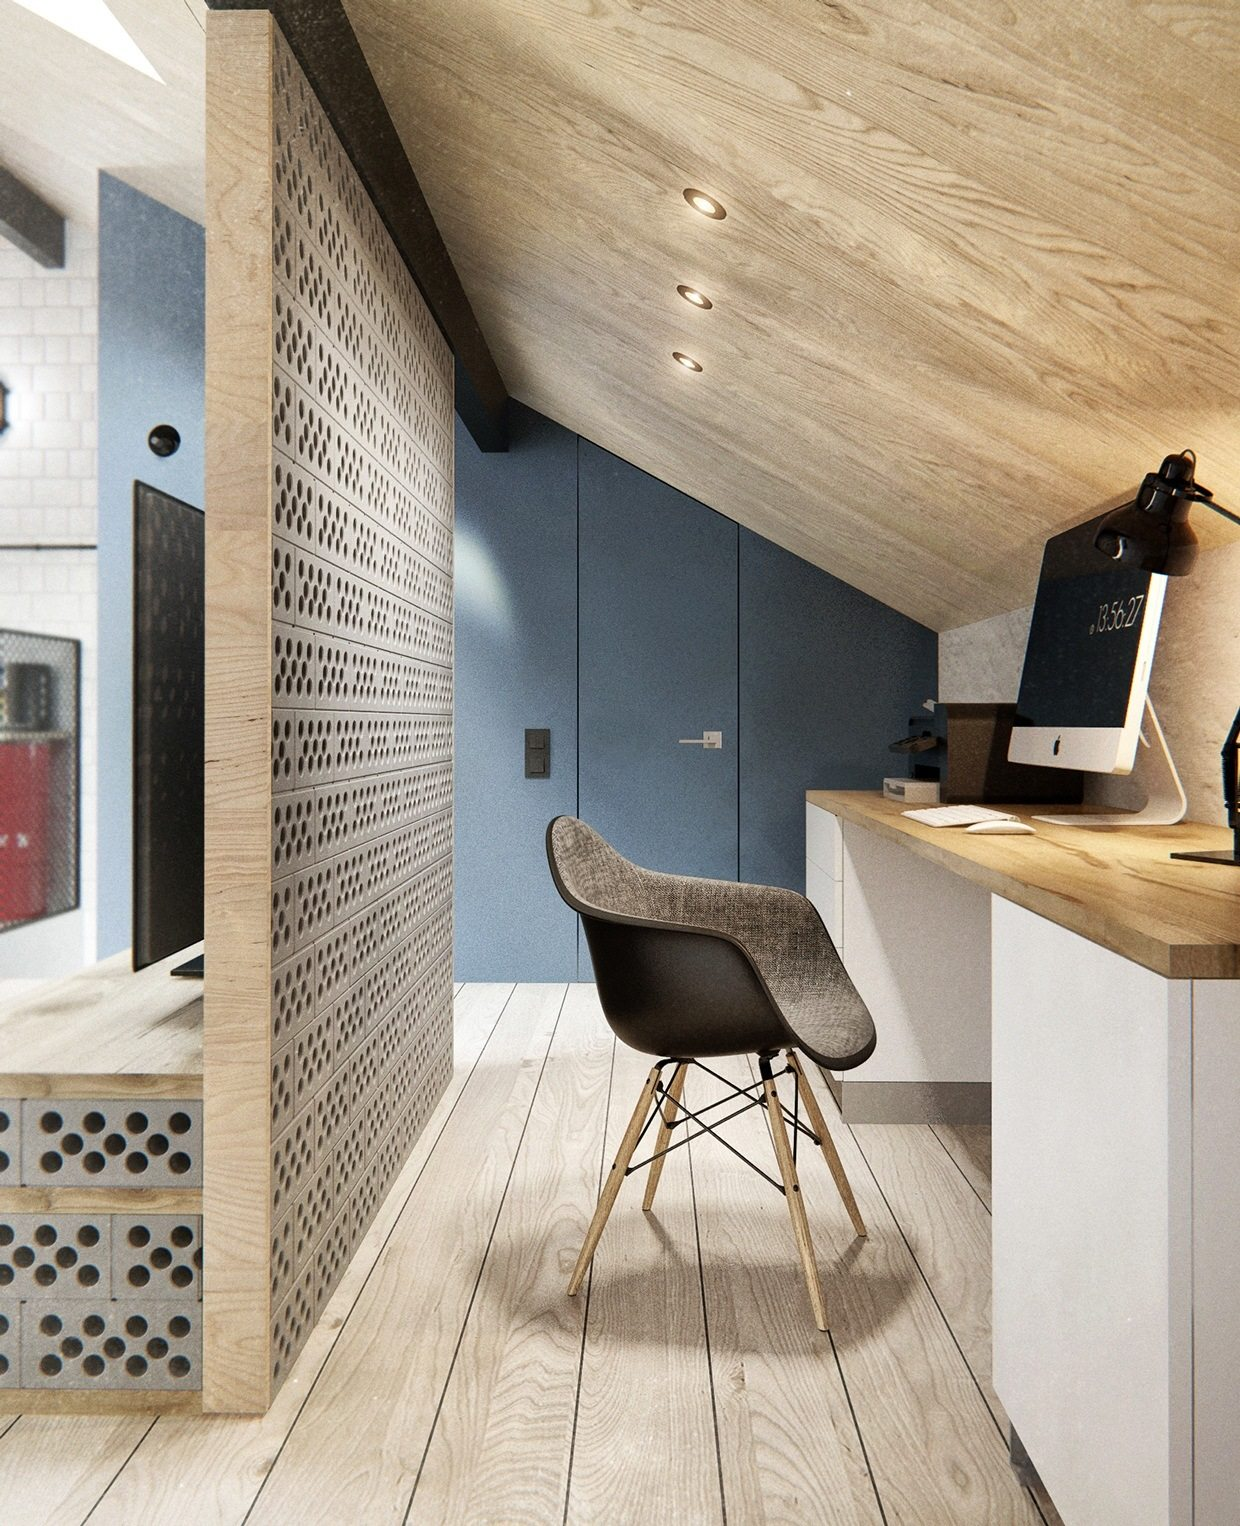 The workspace ideas